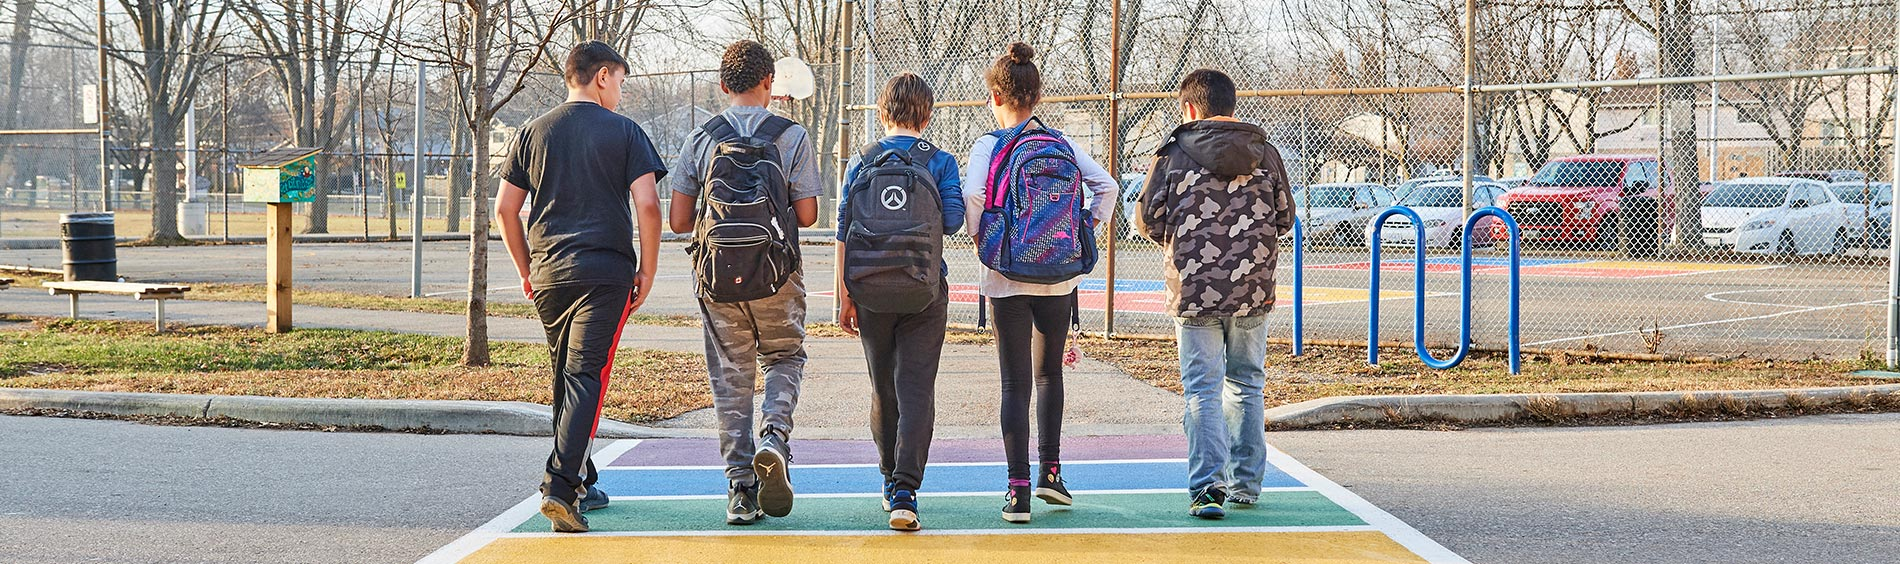 teens walking together with backpacks